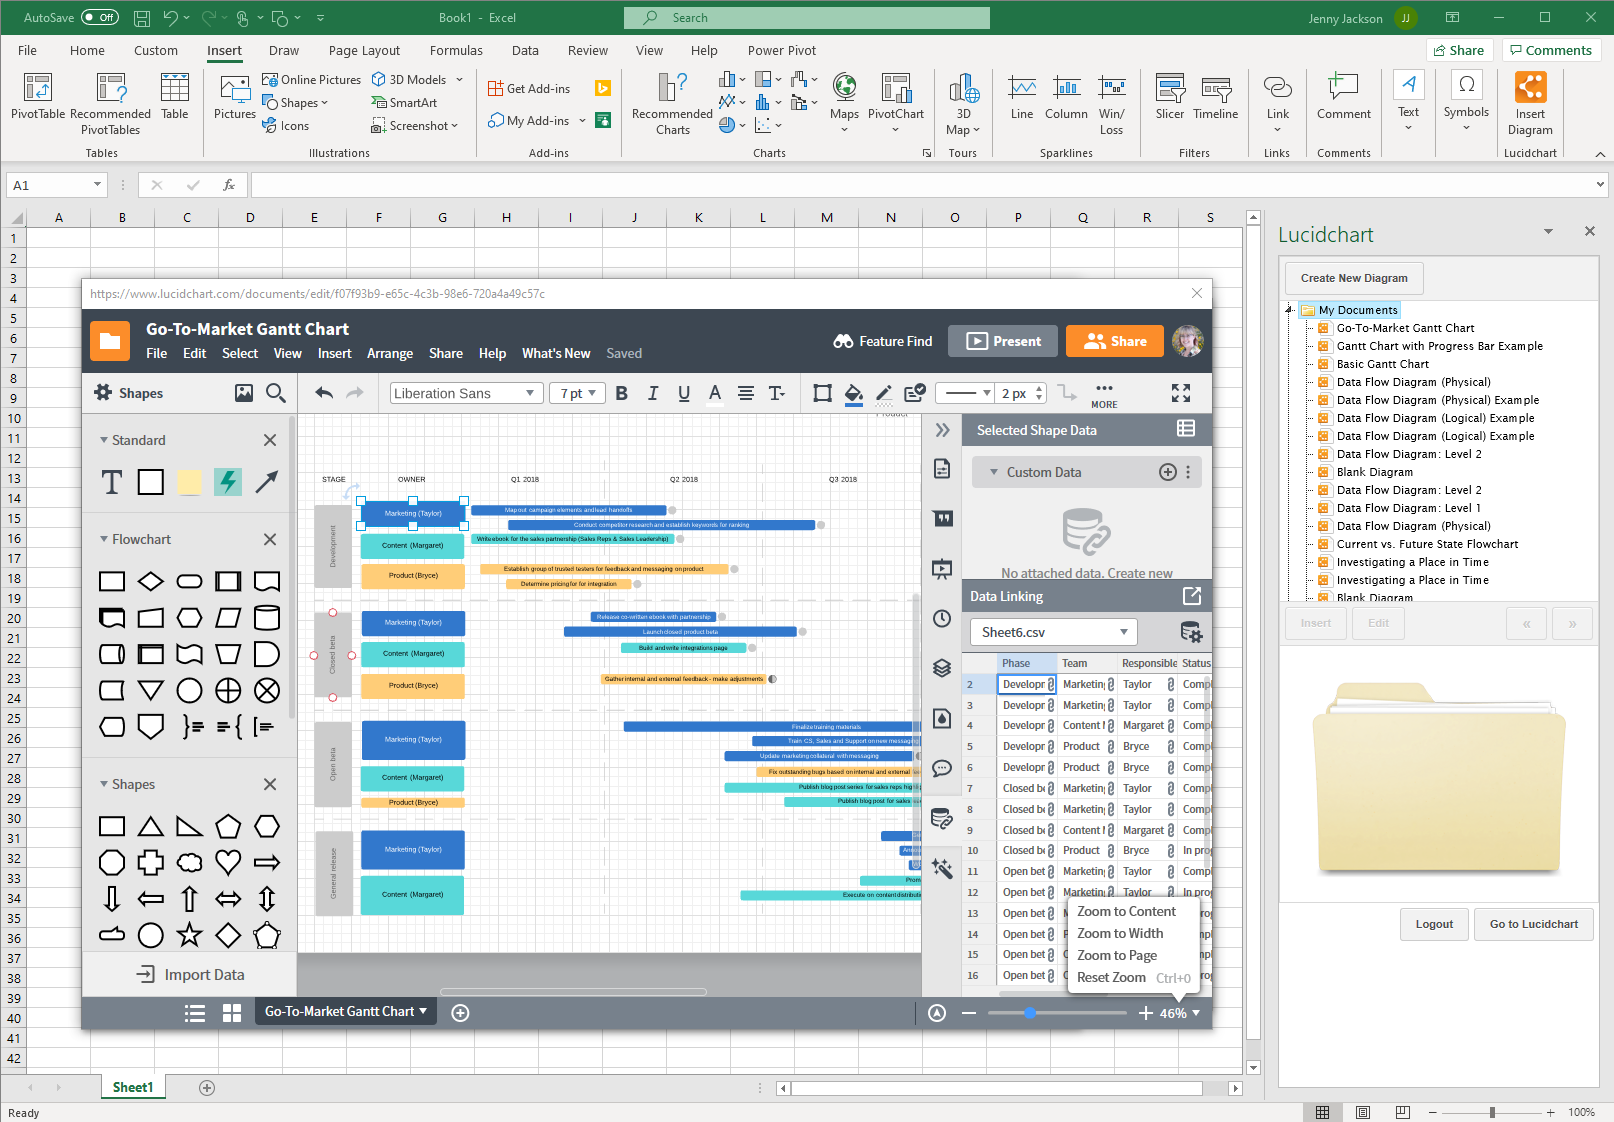 Build a gantt chart in Excel with the Lucidchart editor